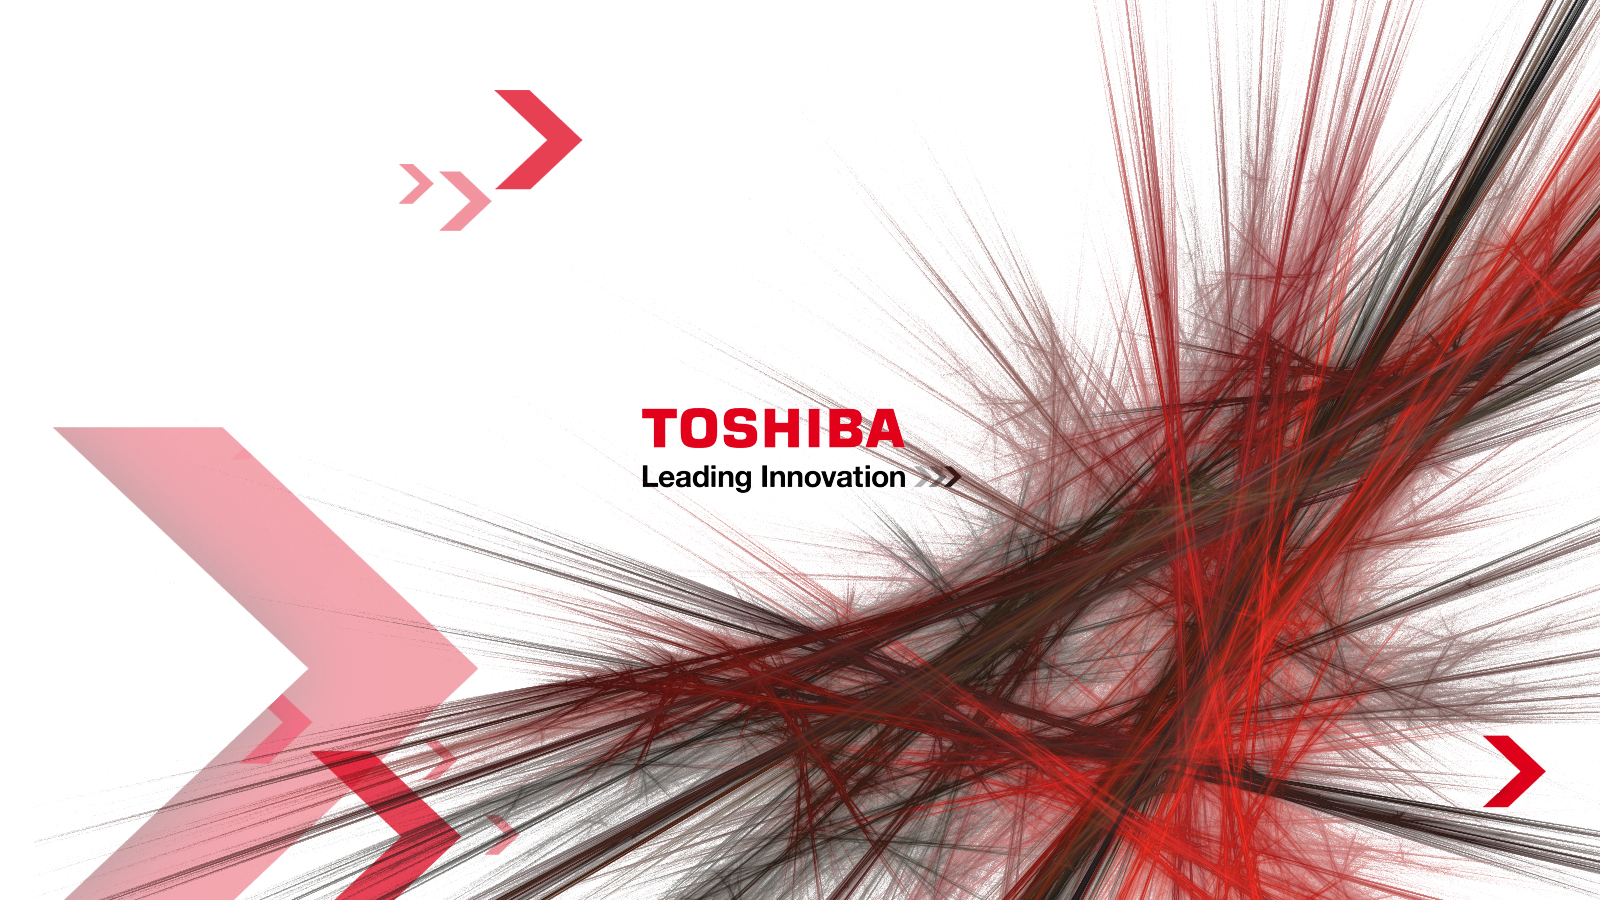 Toshiba Coupons & Offers for the week